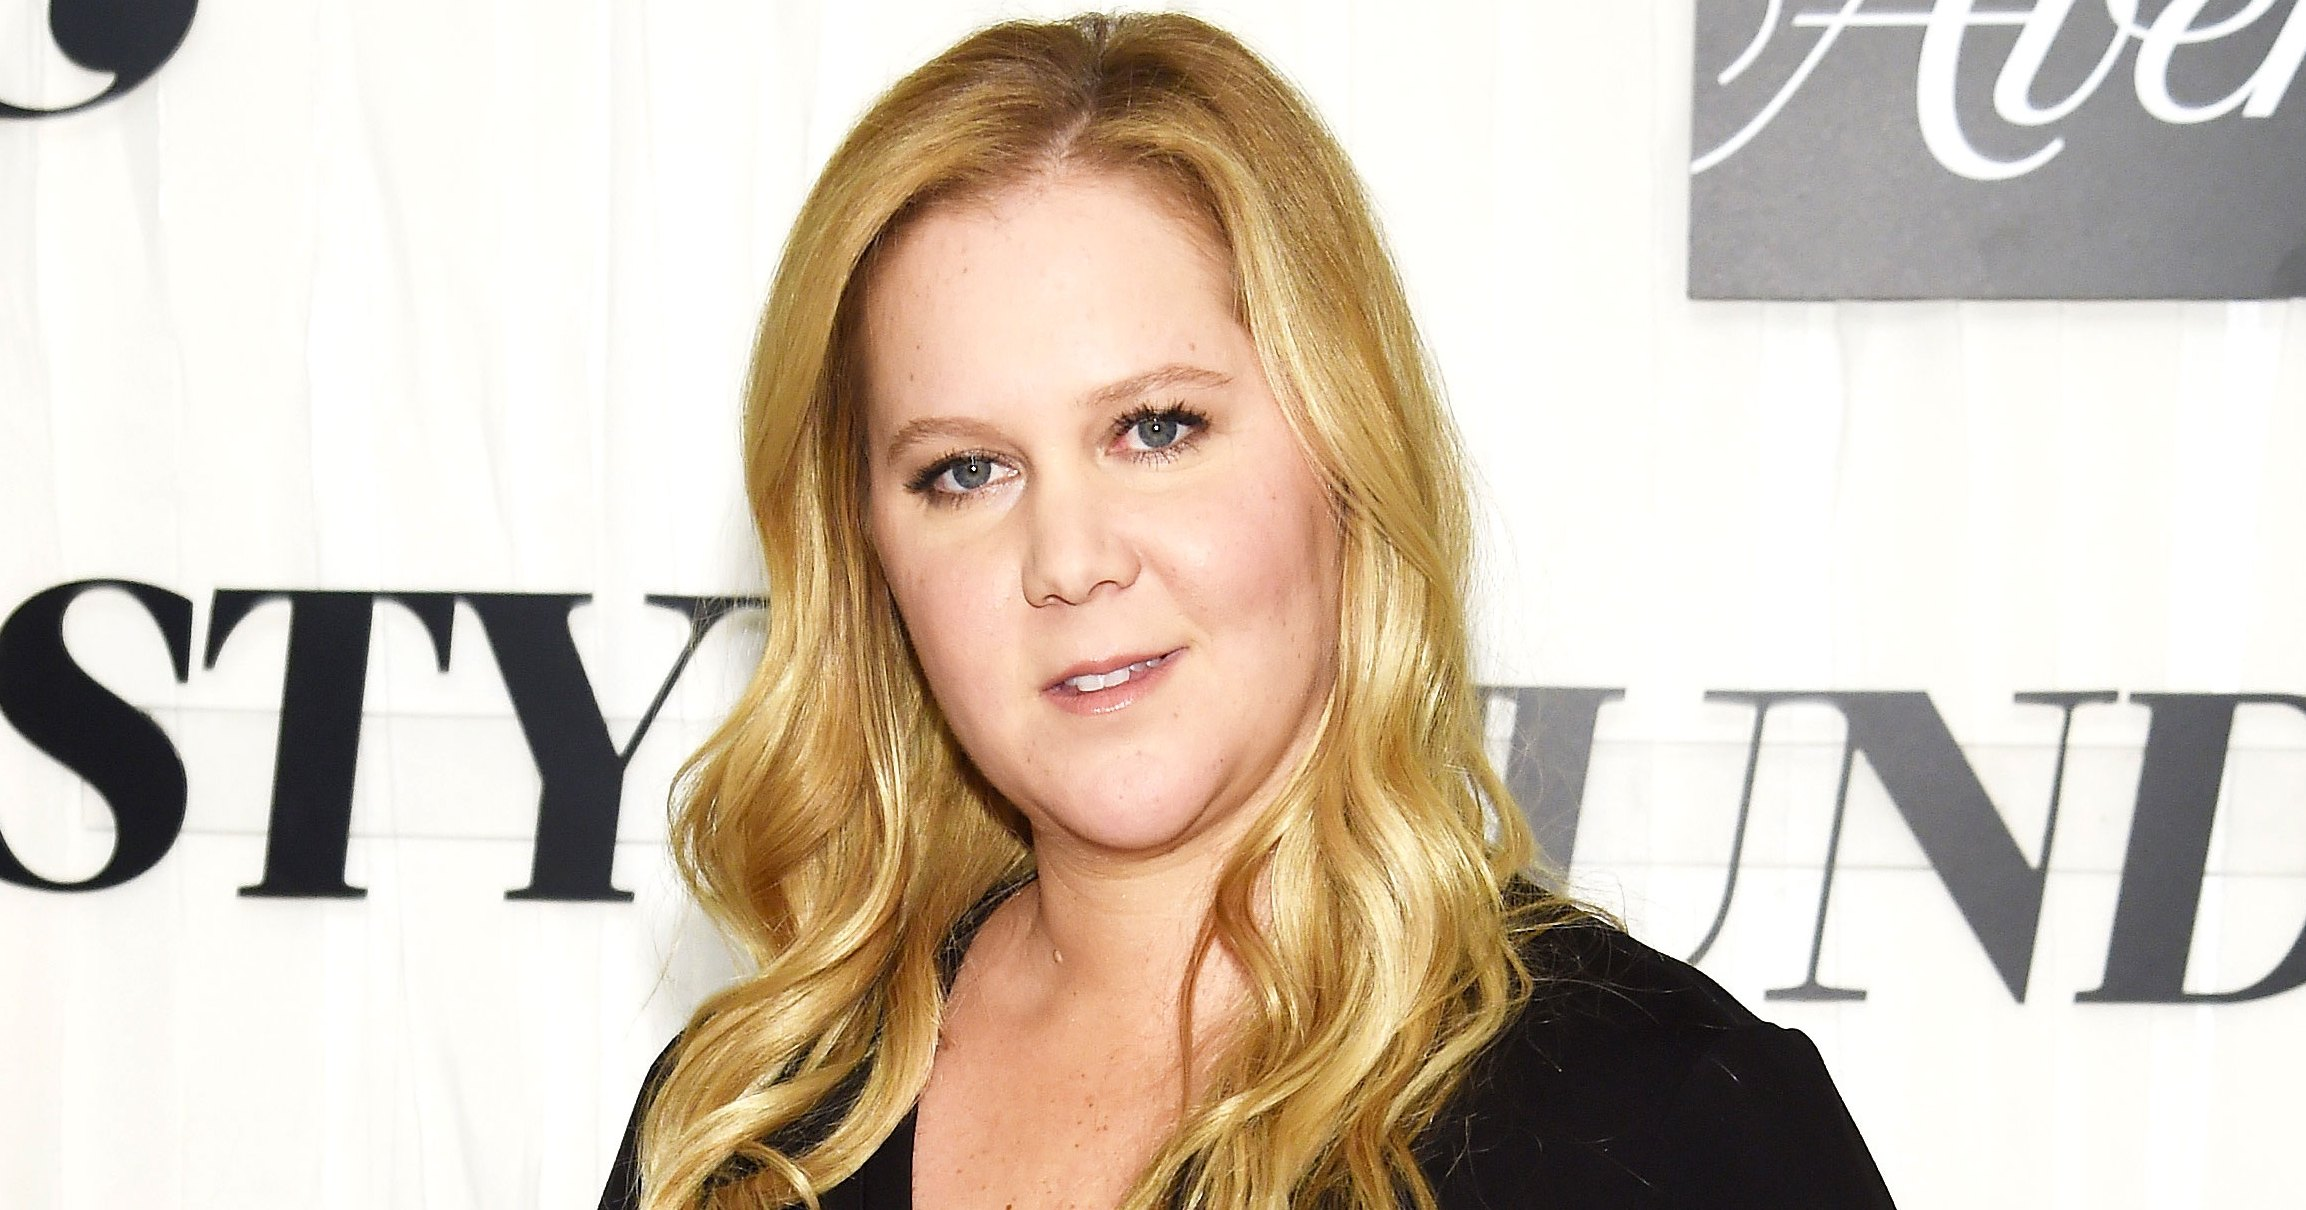 Pregnant Amy Schumer Jokes She 'Couldn't Have Worn a Worse Bra' for Red Carpet Maternity Look